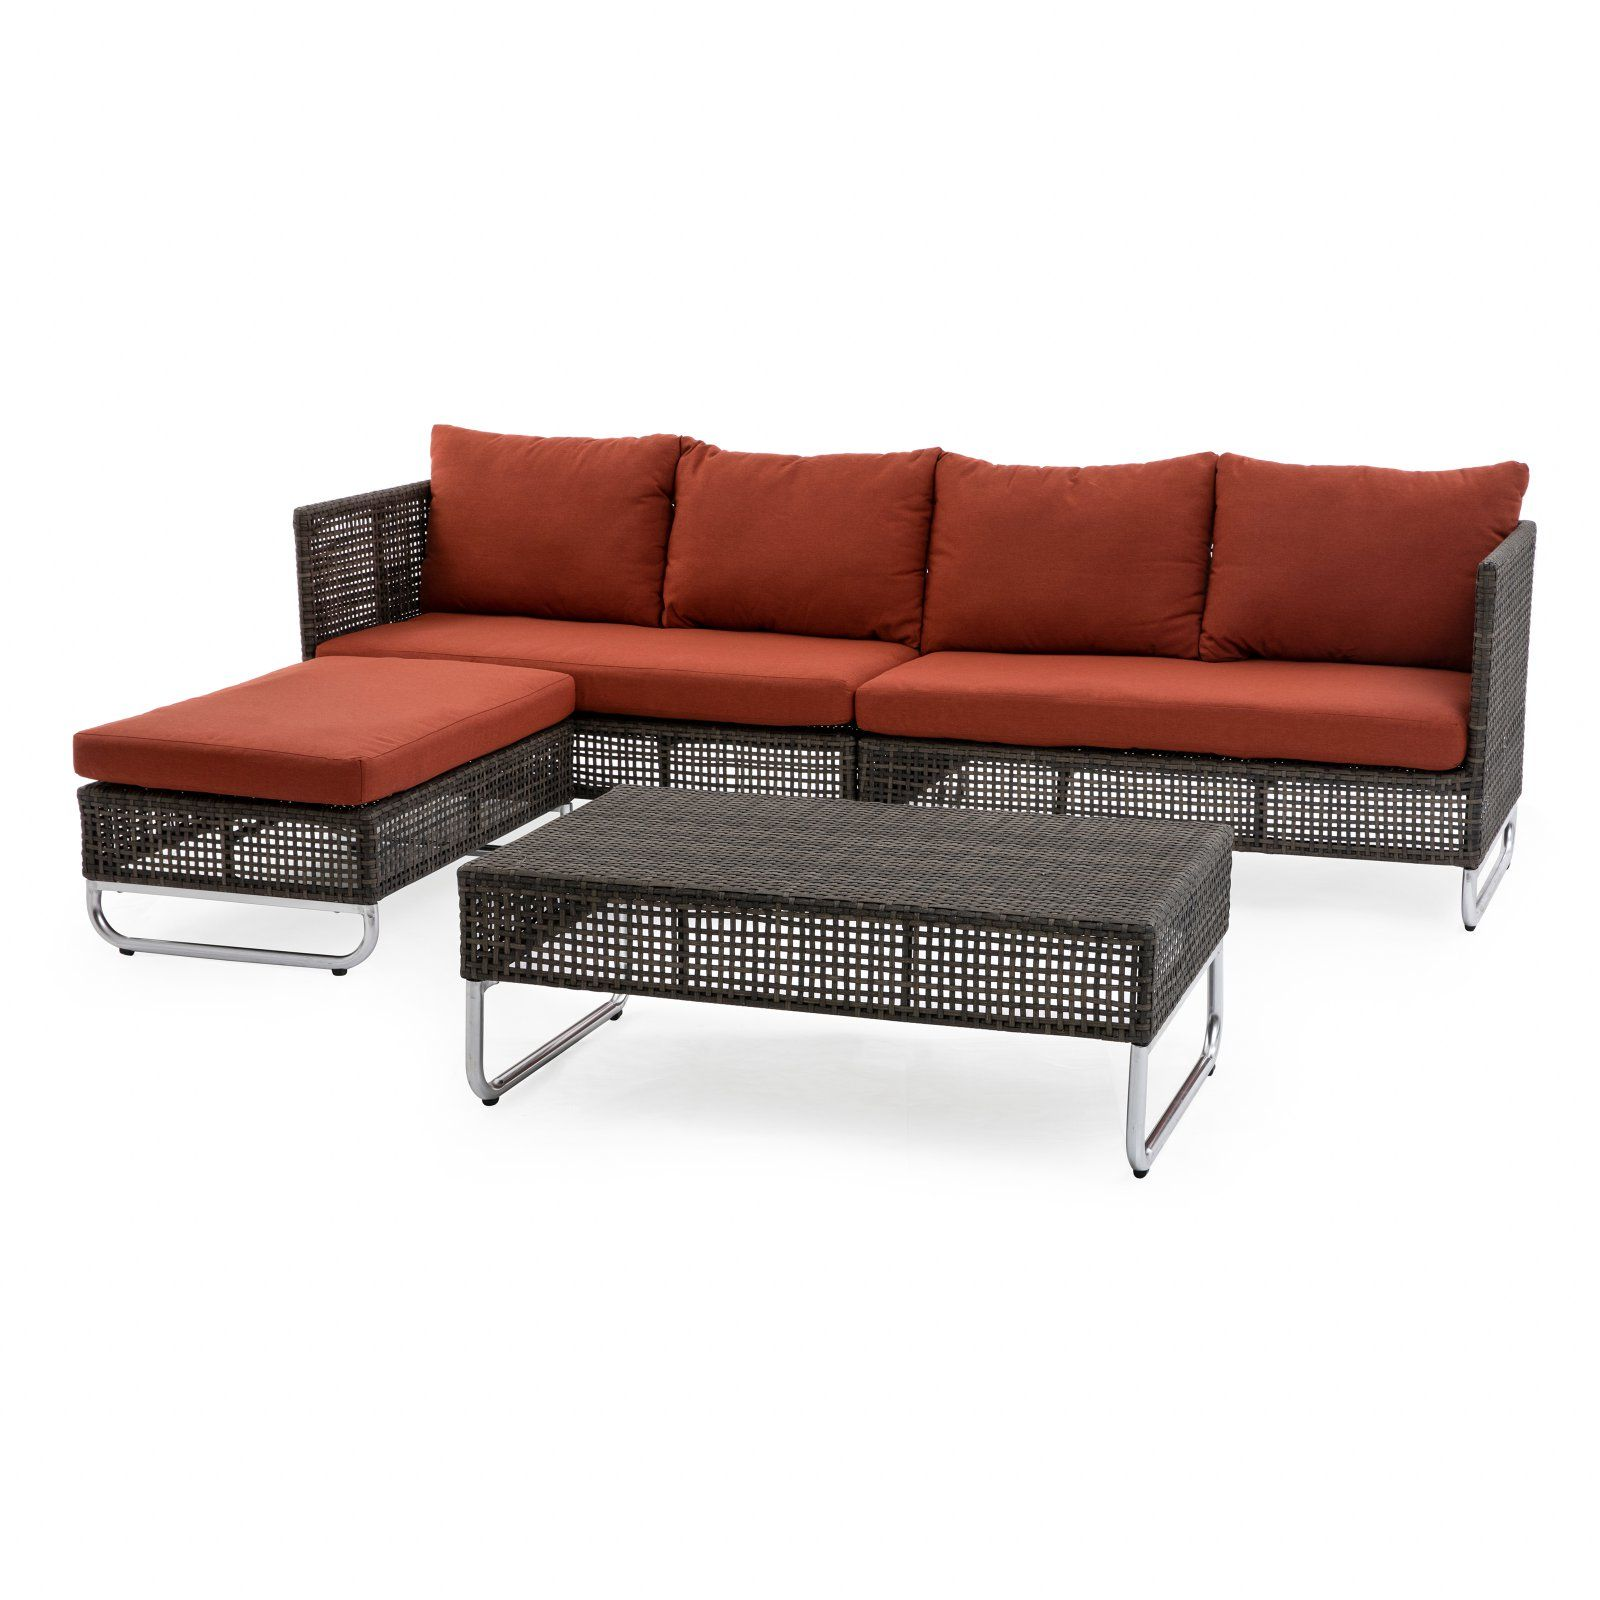 Peachy Coral Coast Maryana All Weather Wicker Open Weave Outdoor Gmtry Best Dining Table And Chair Ideas Images Gmtryco